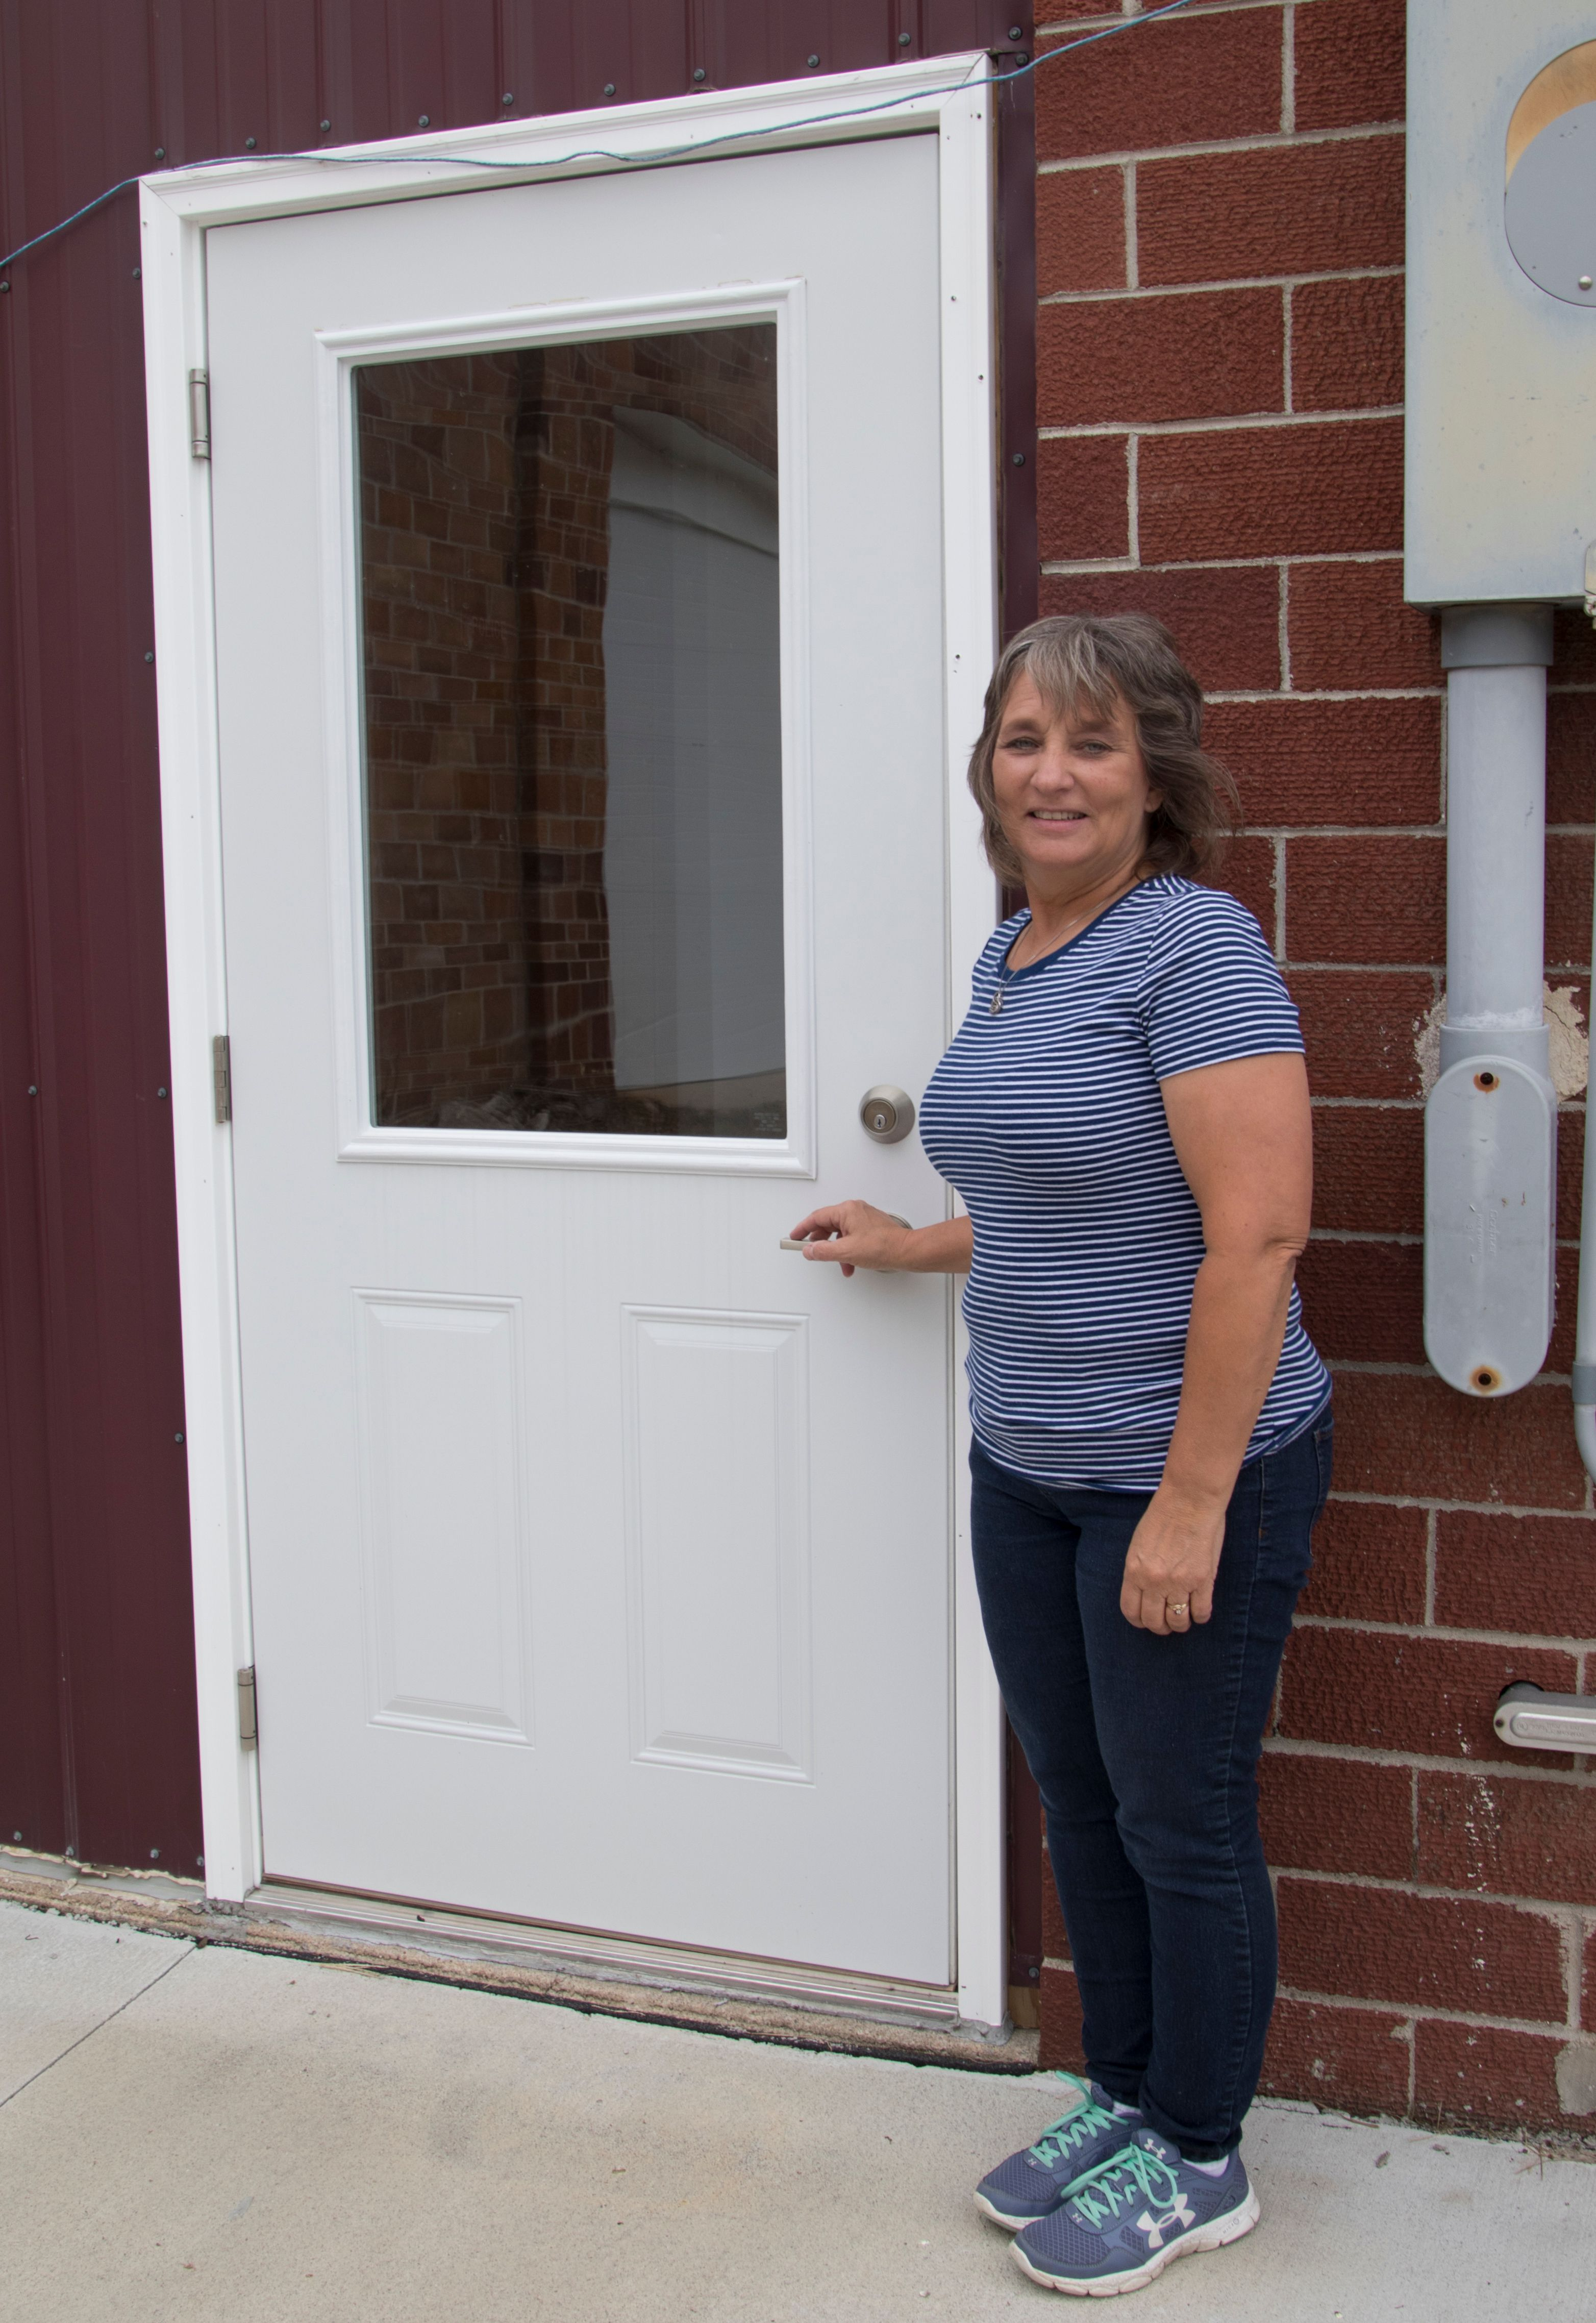 Village of Howells has new door thanks to Lean on LARM grant